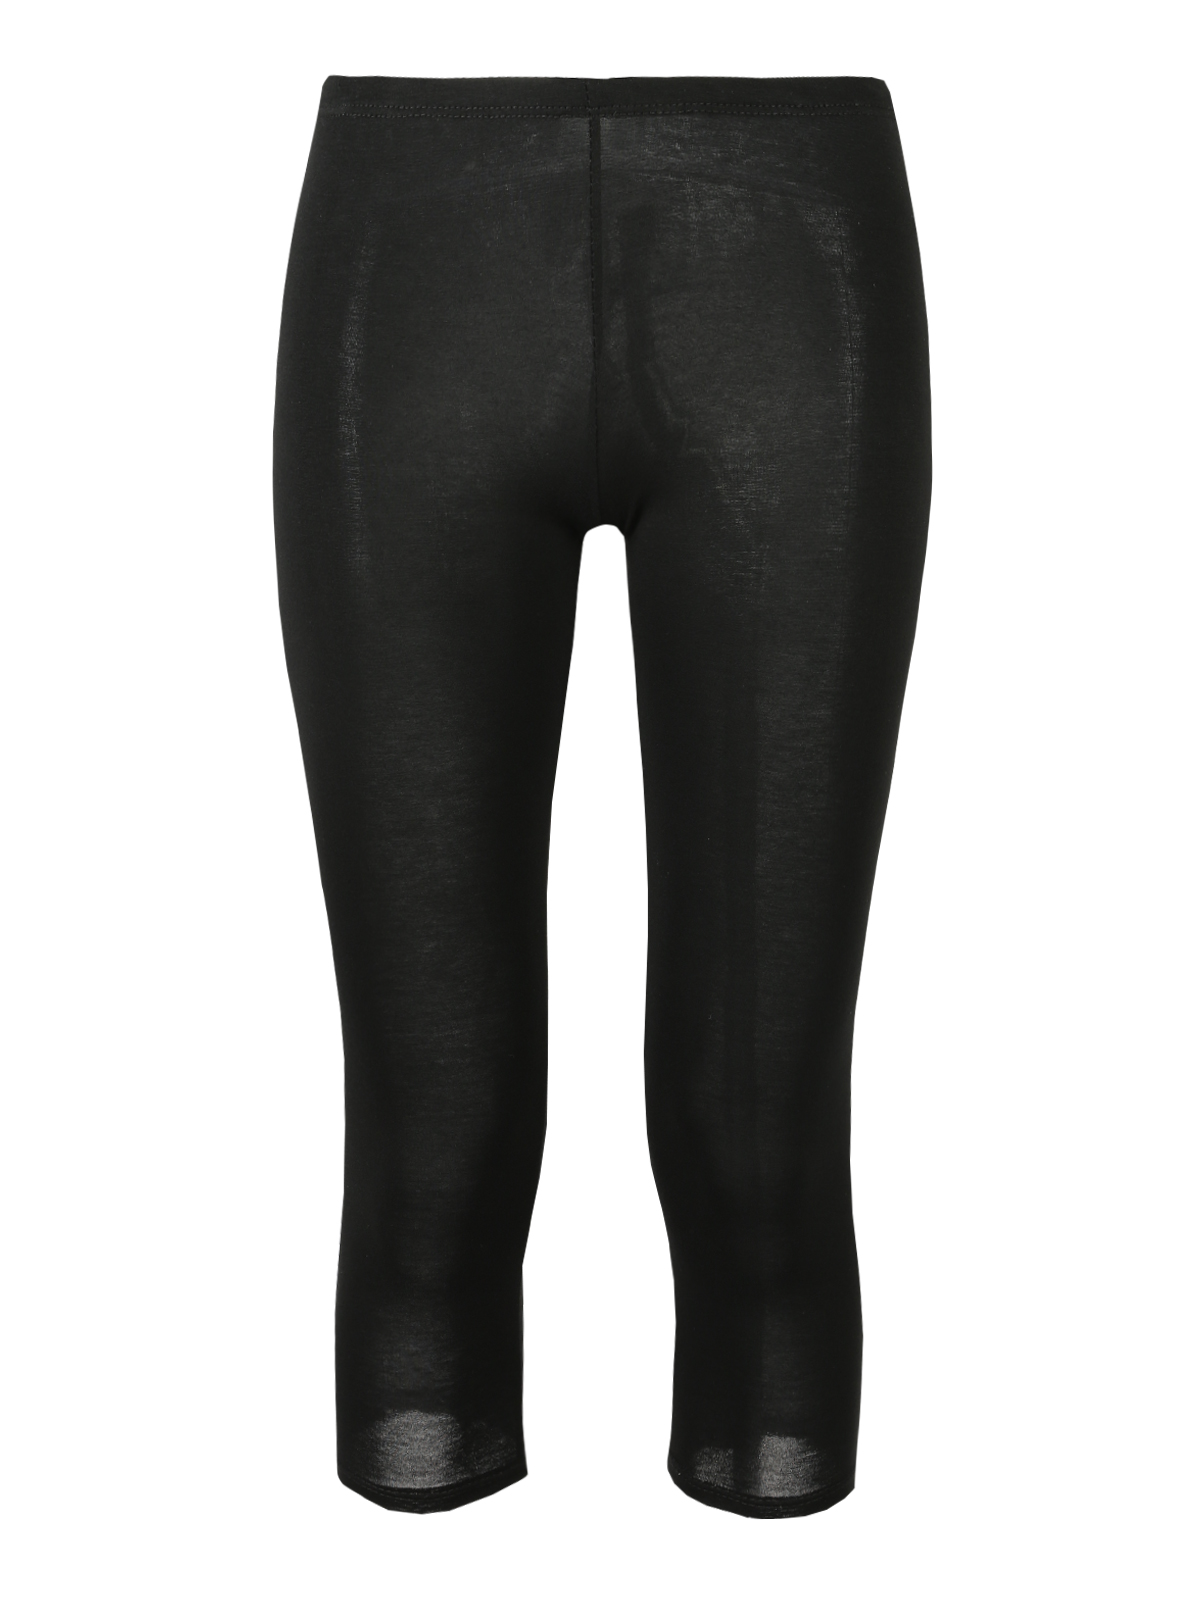 Short Leggings Women